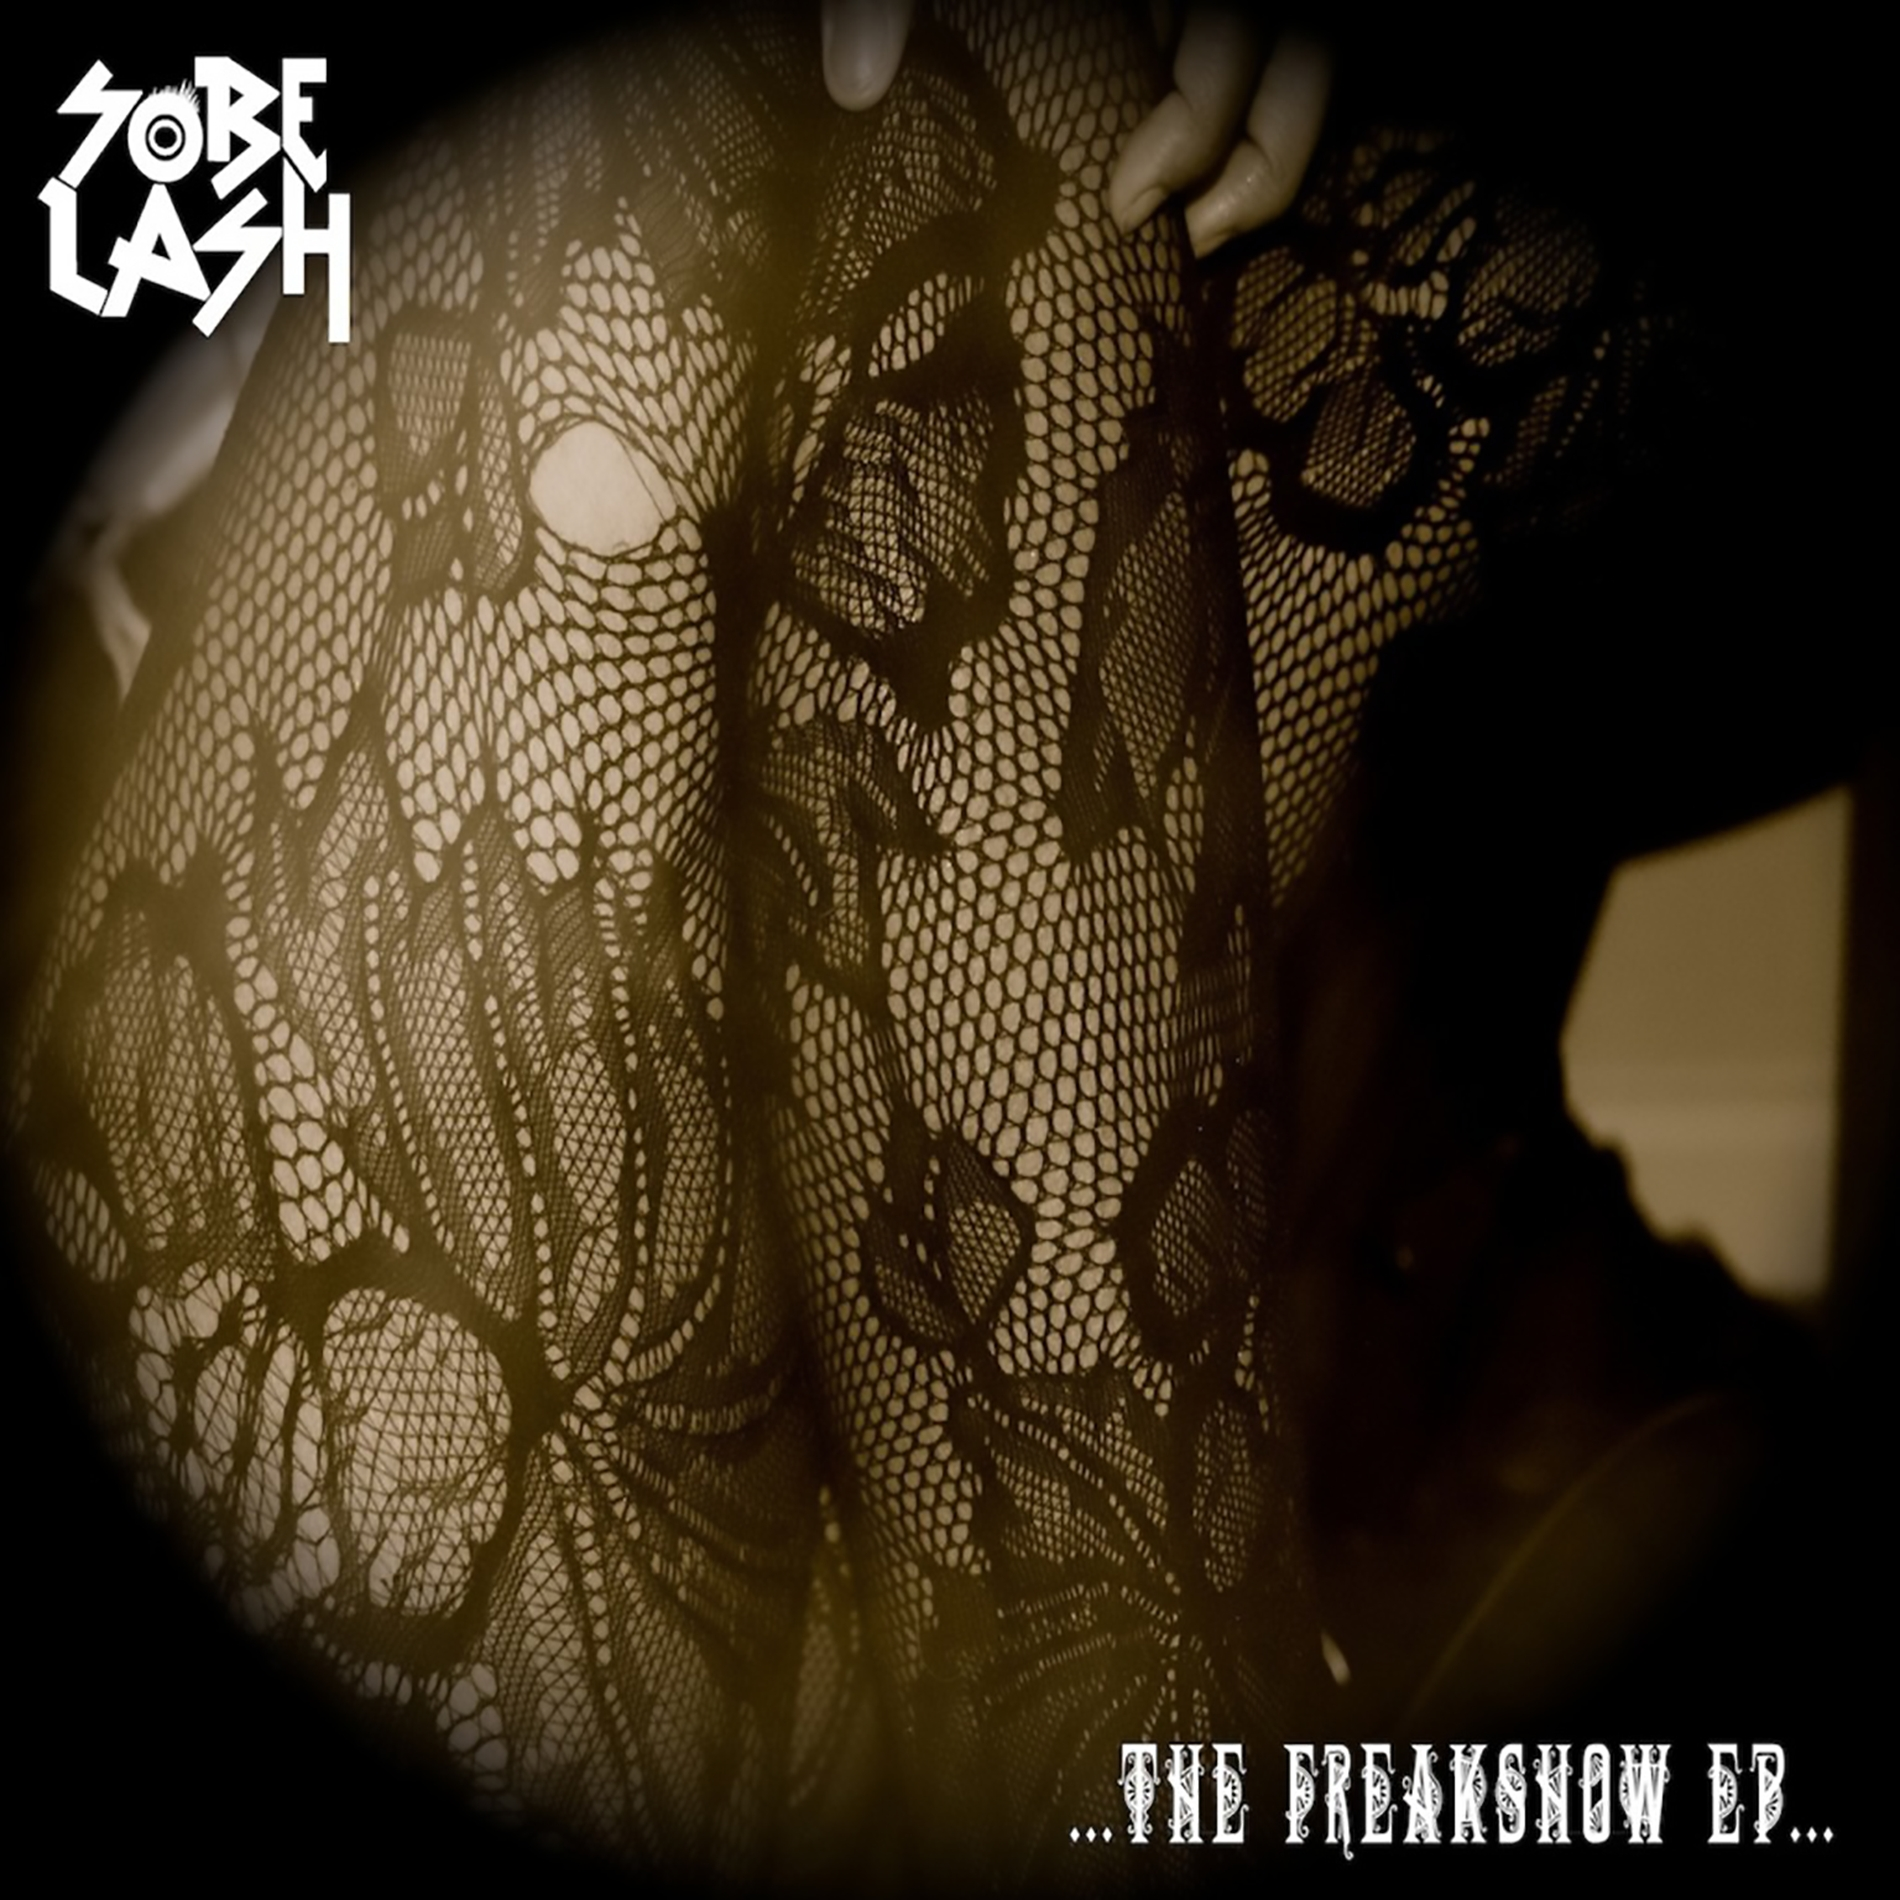 The Freakshow EP